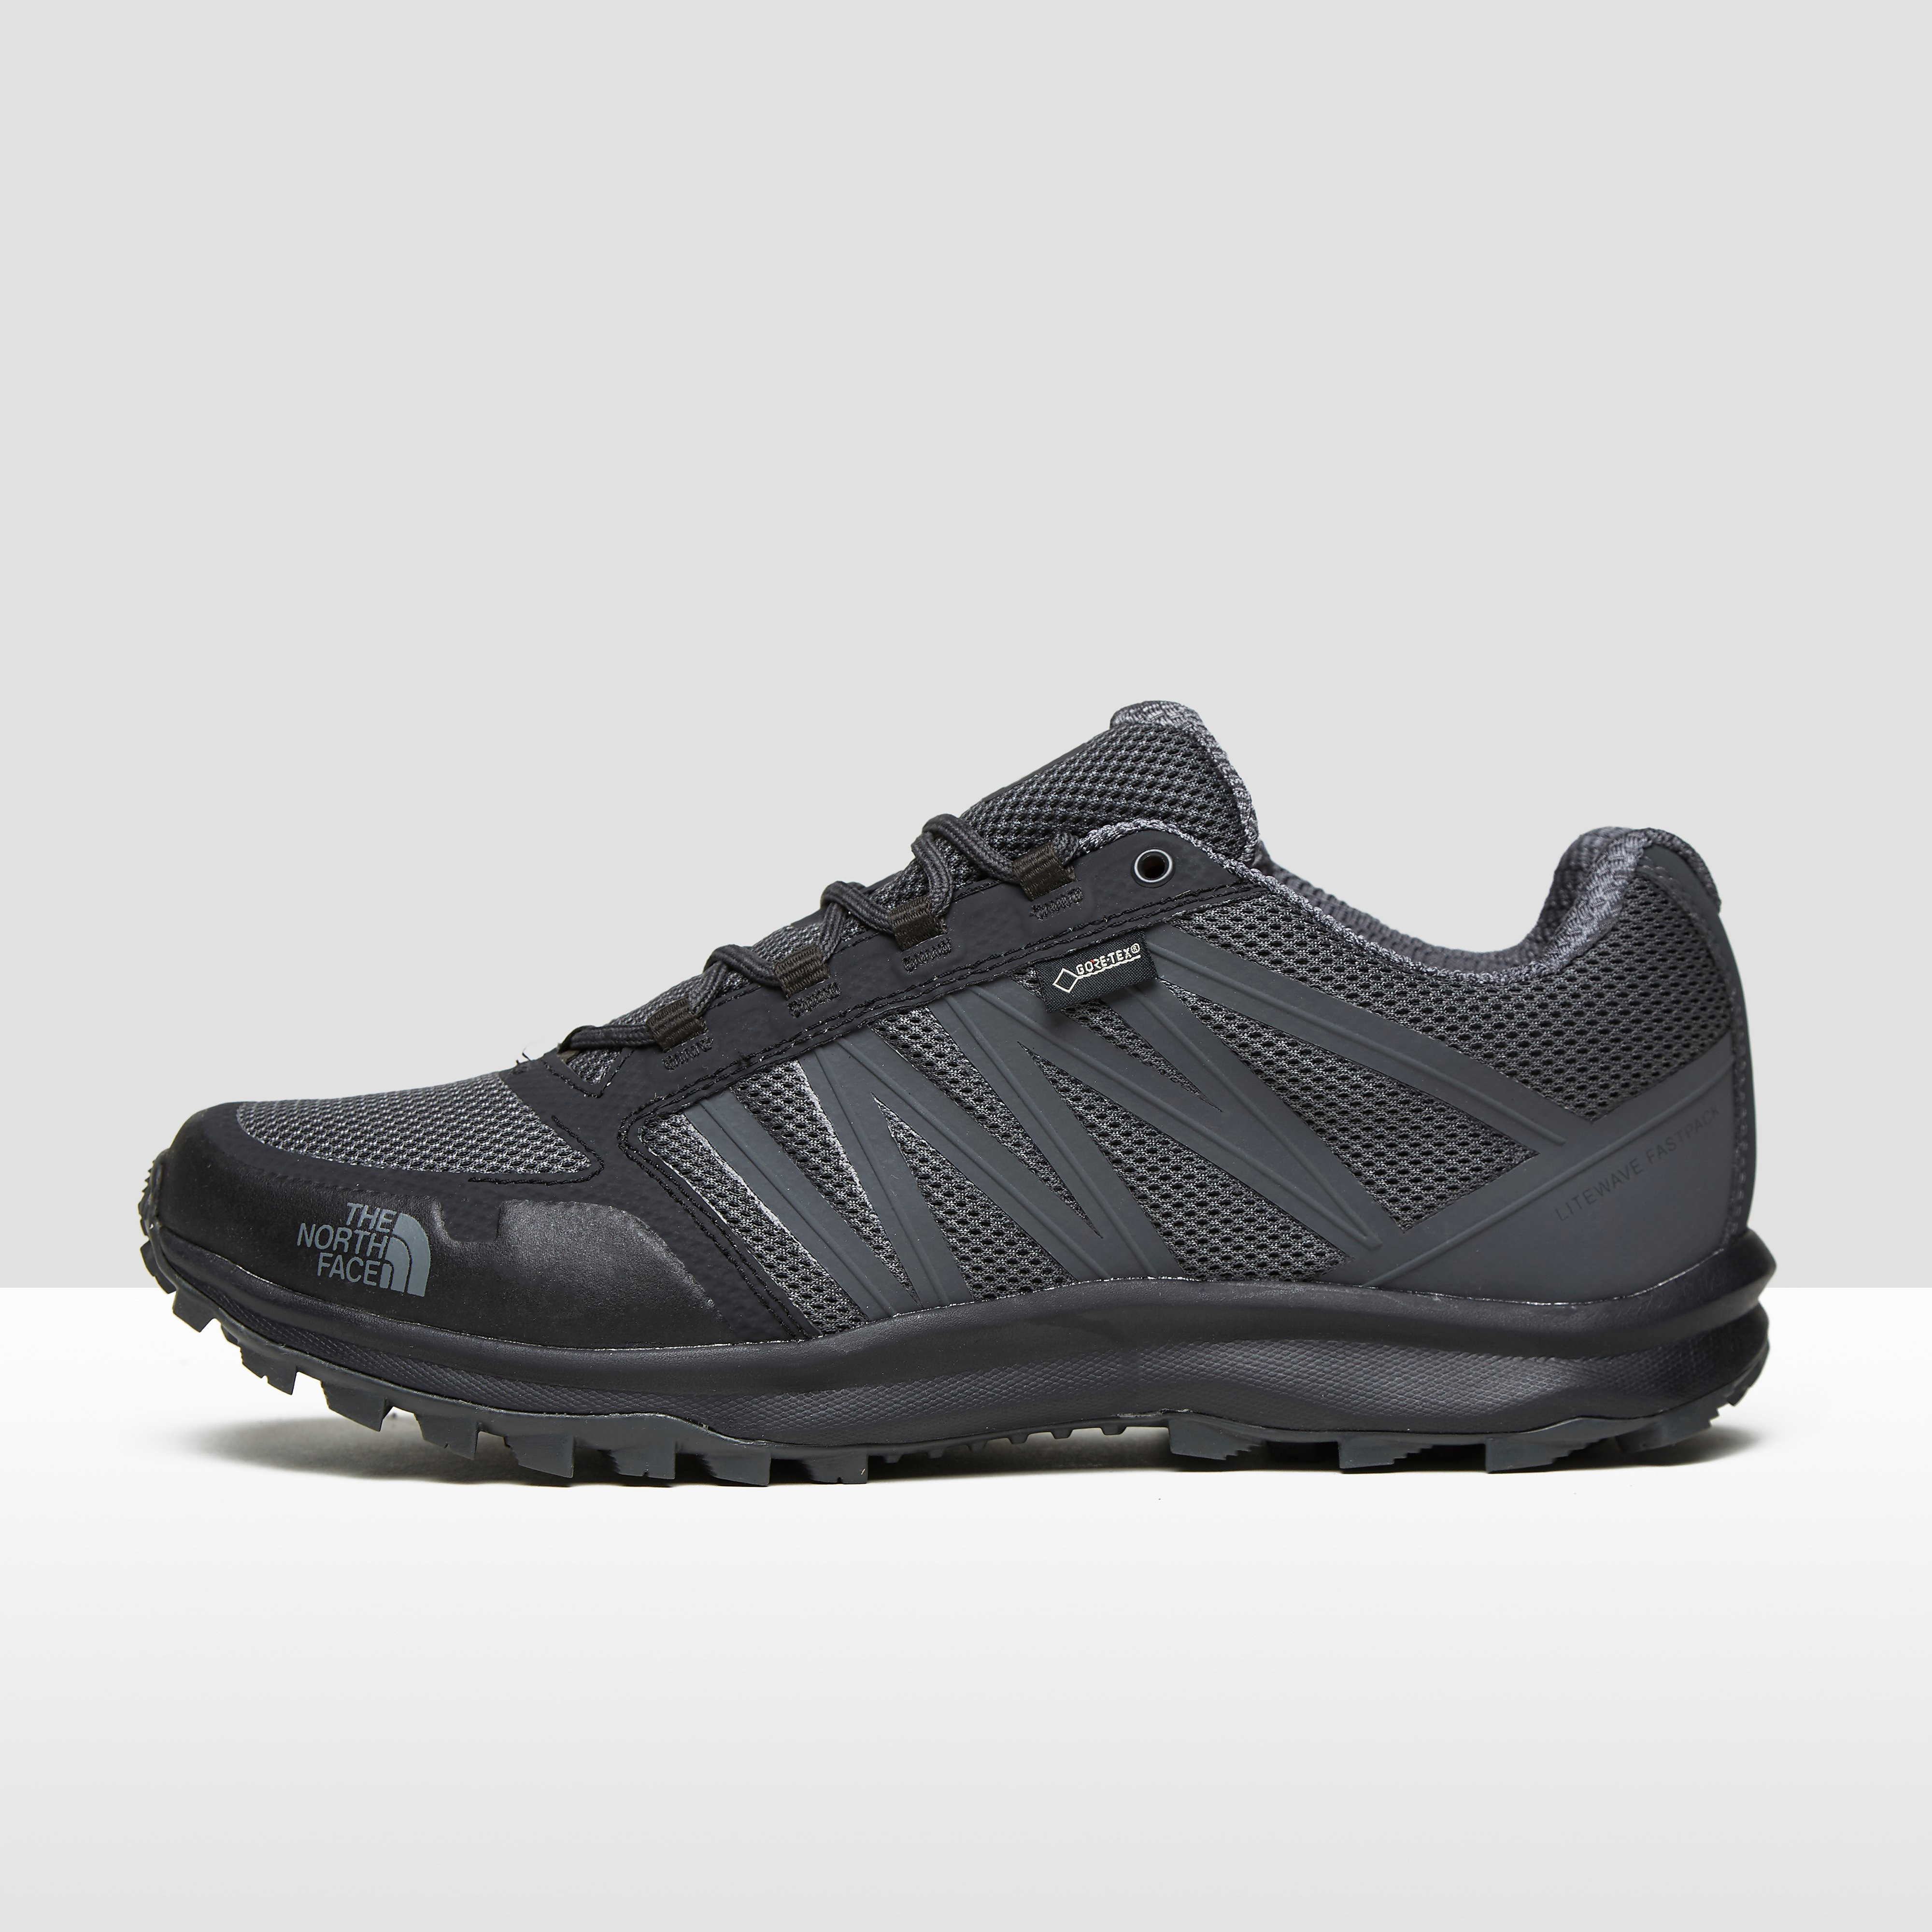 THE NORTH FACE LITE WAVE FAST PACK